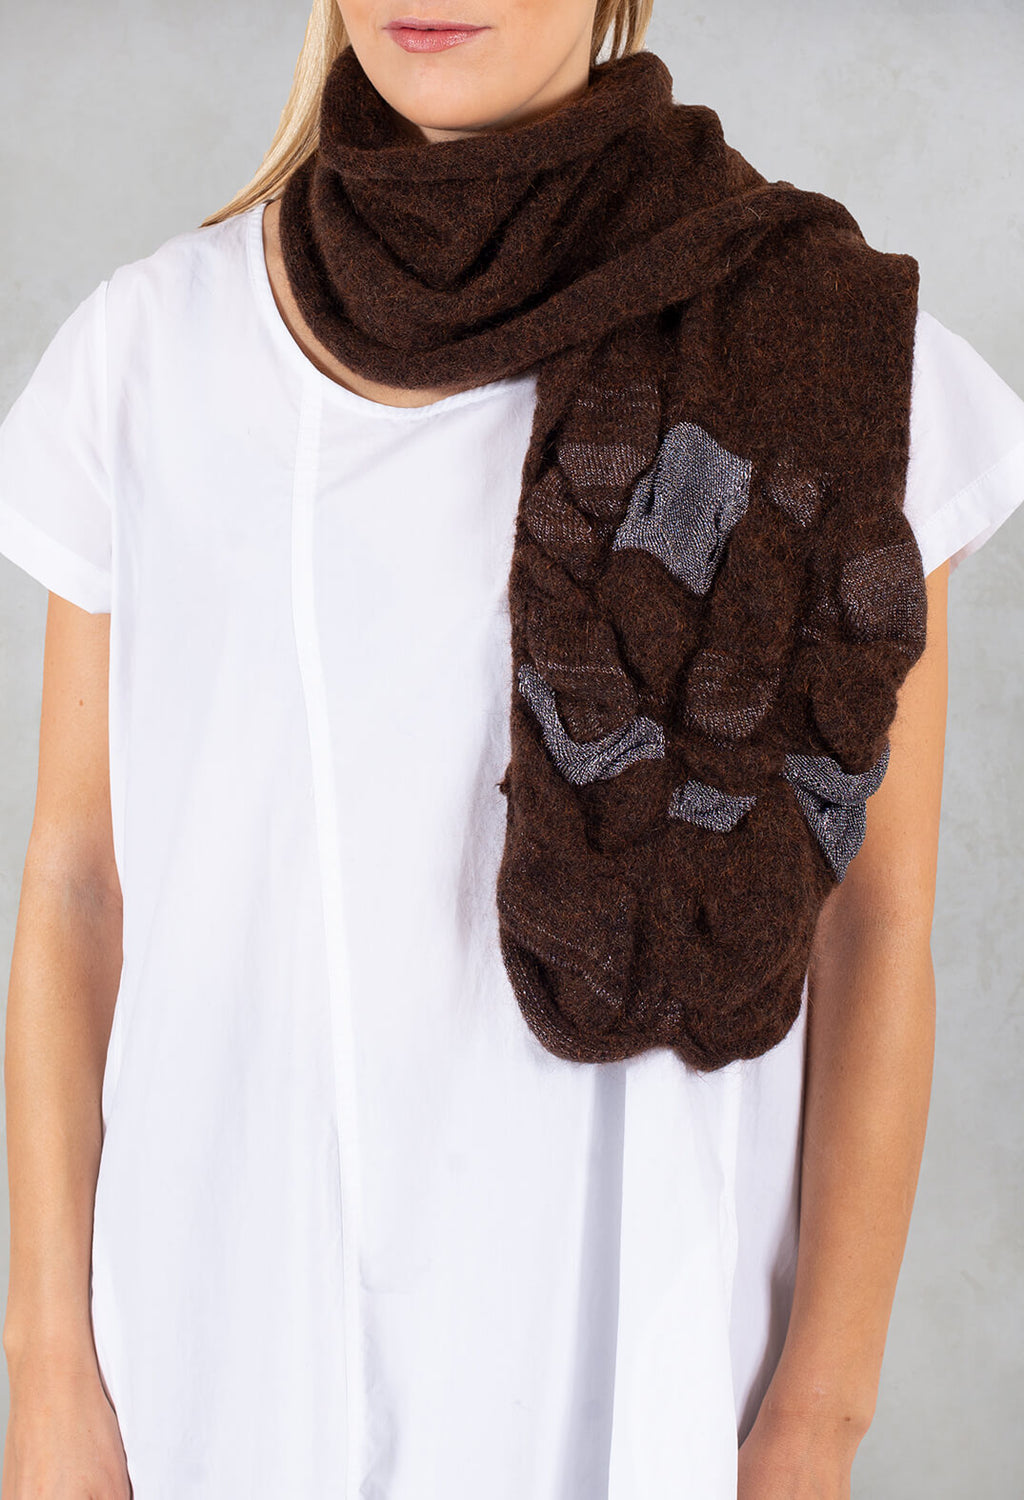 Knitted Scarf in Wine